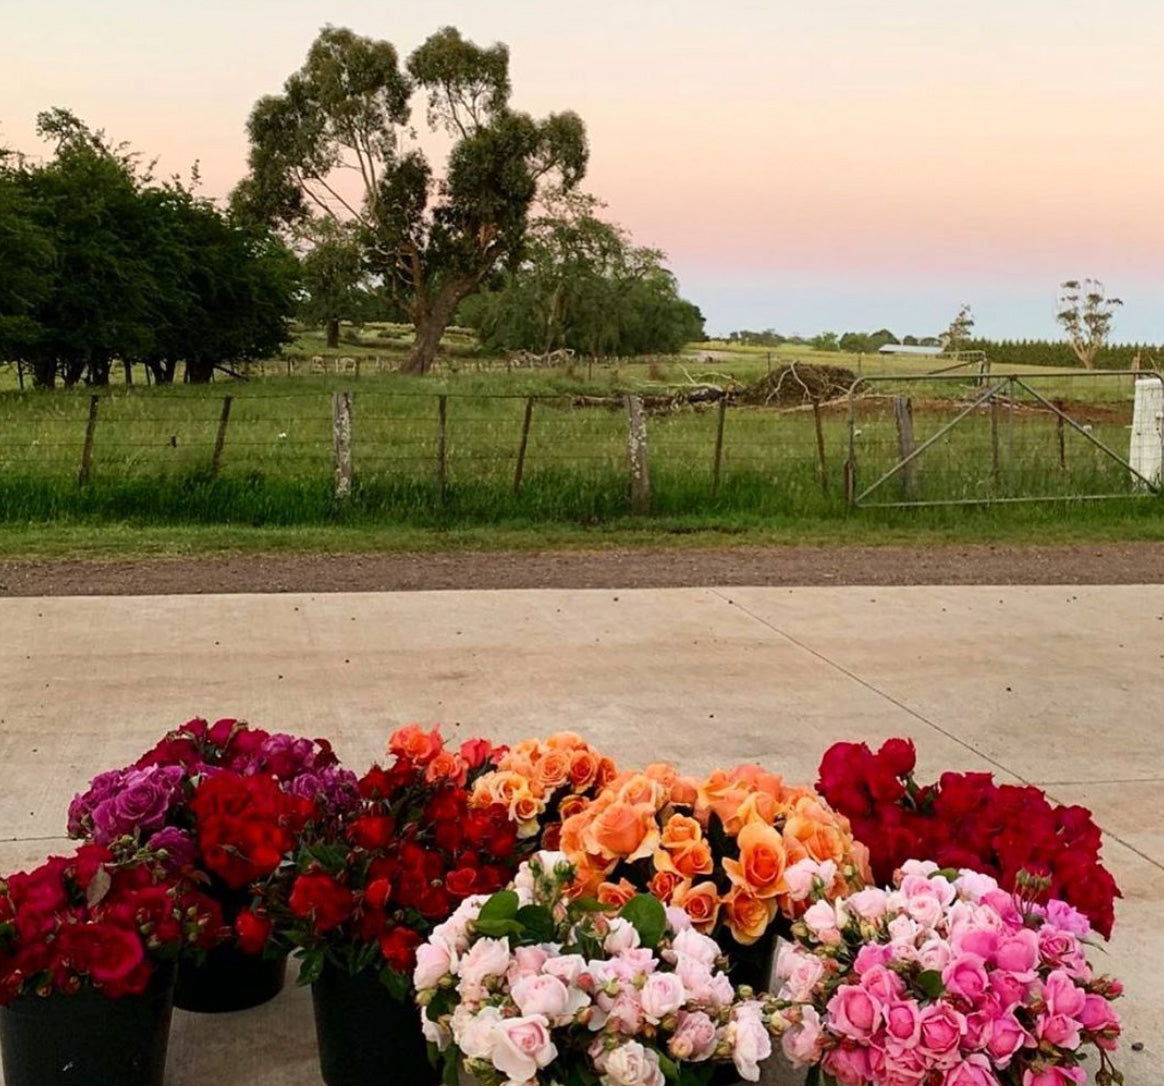 Farm fresh cut flowers ready for delivery across Melbourne